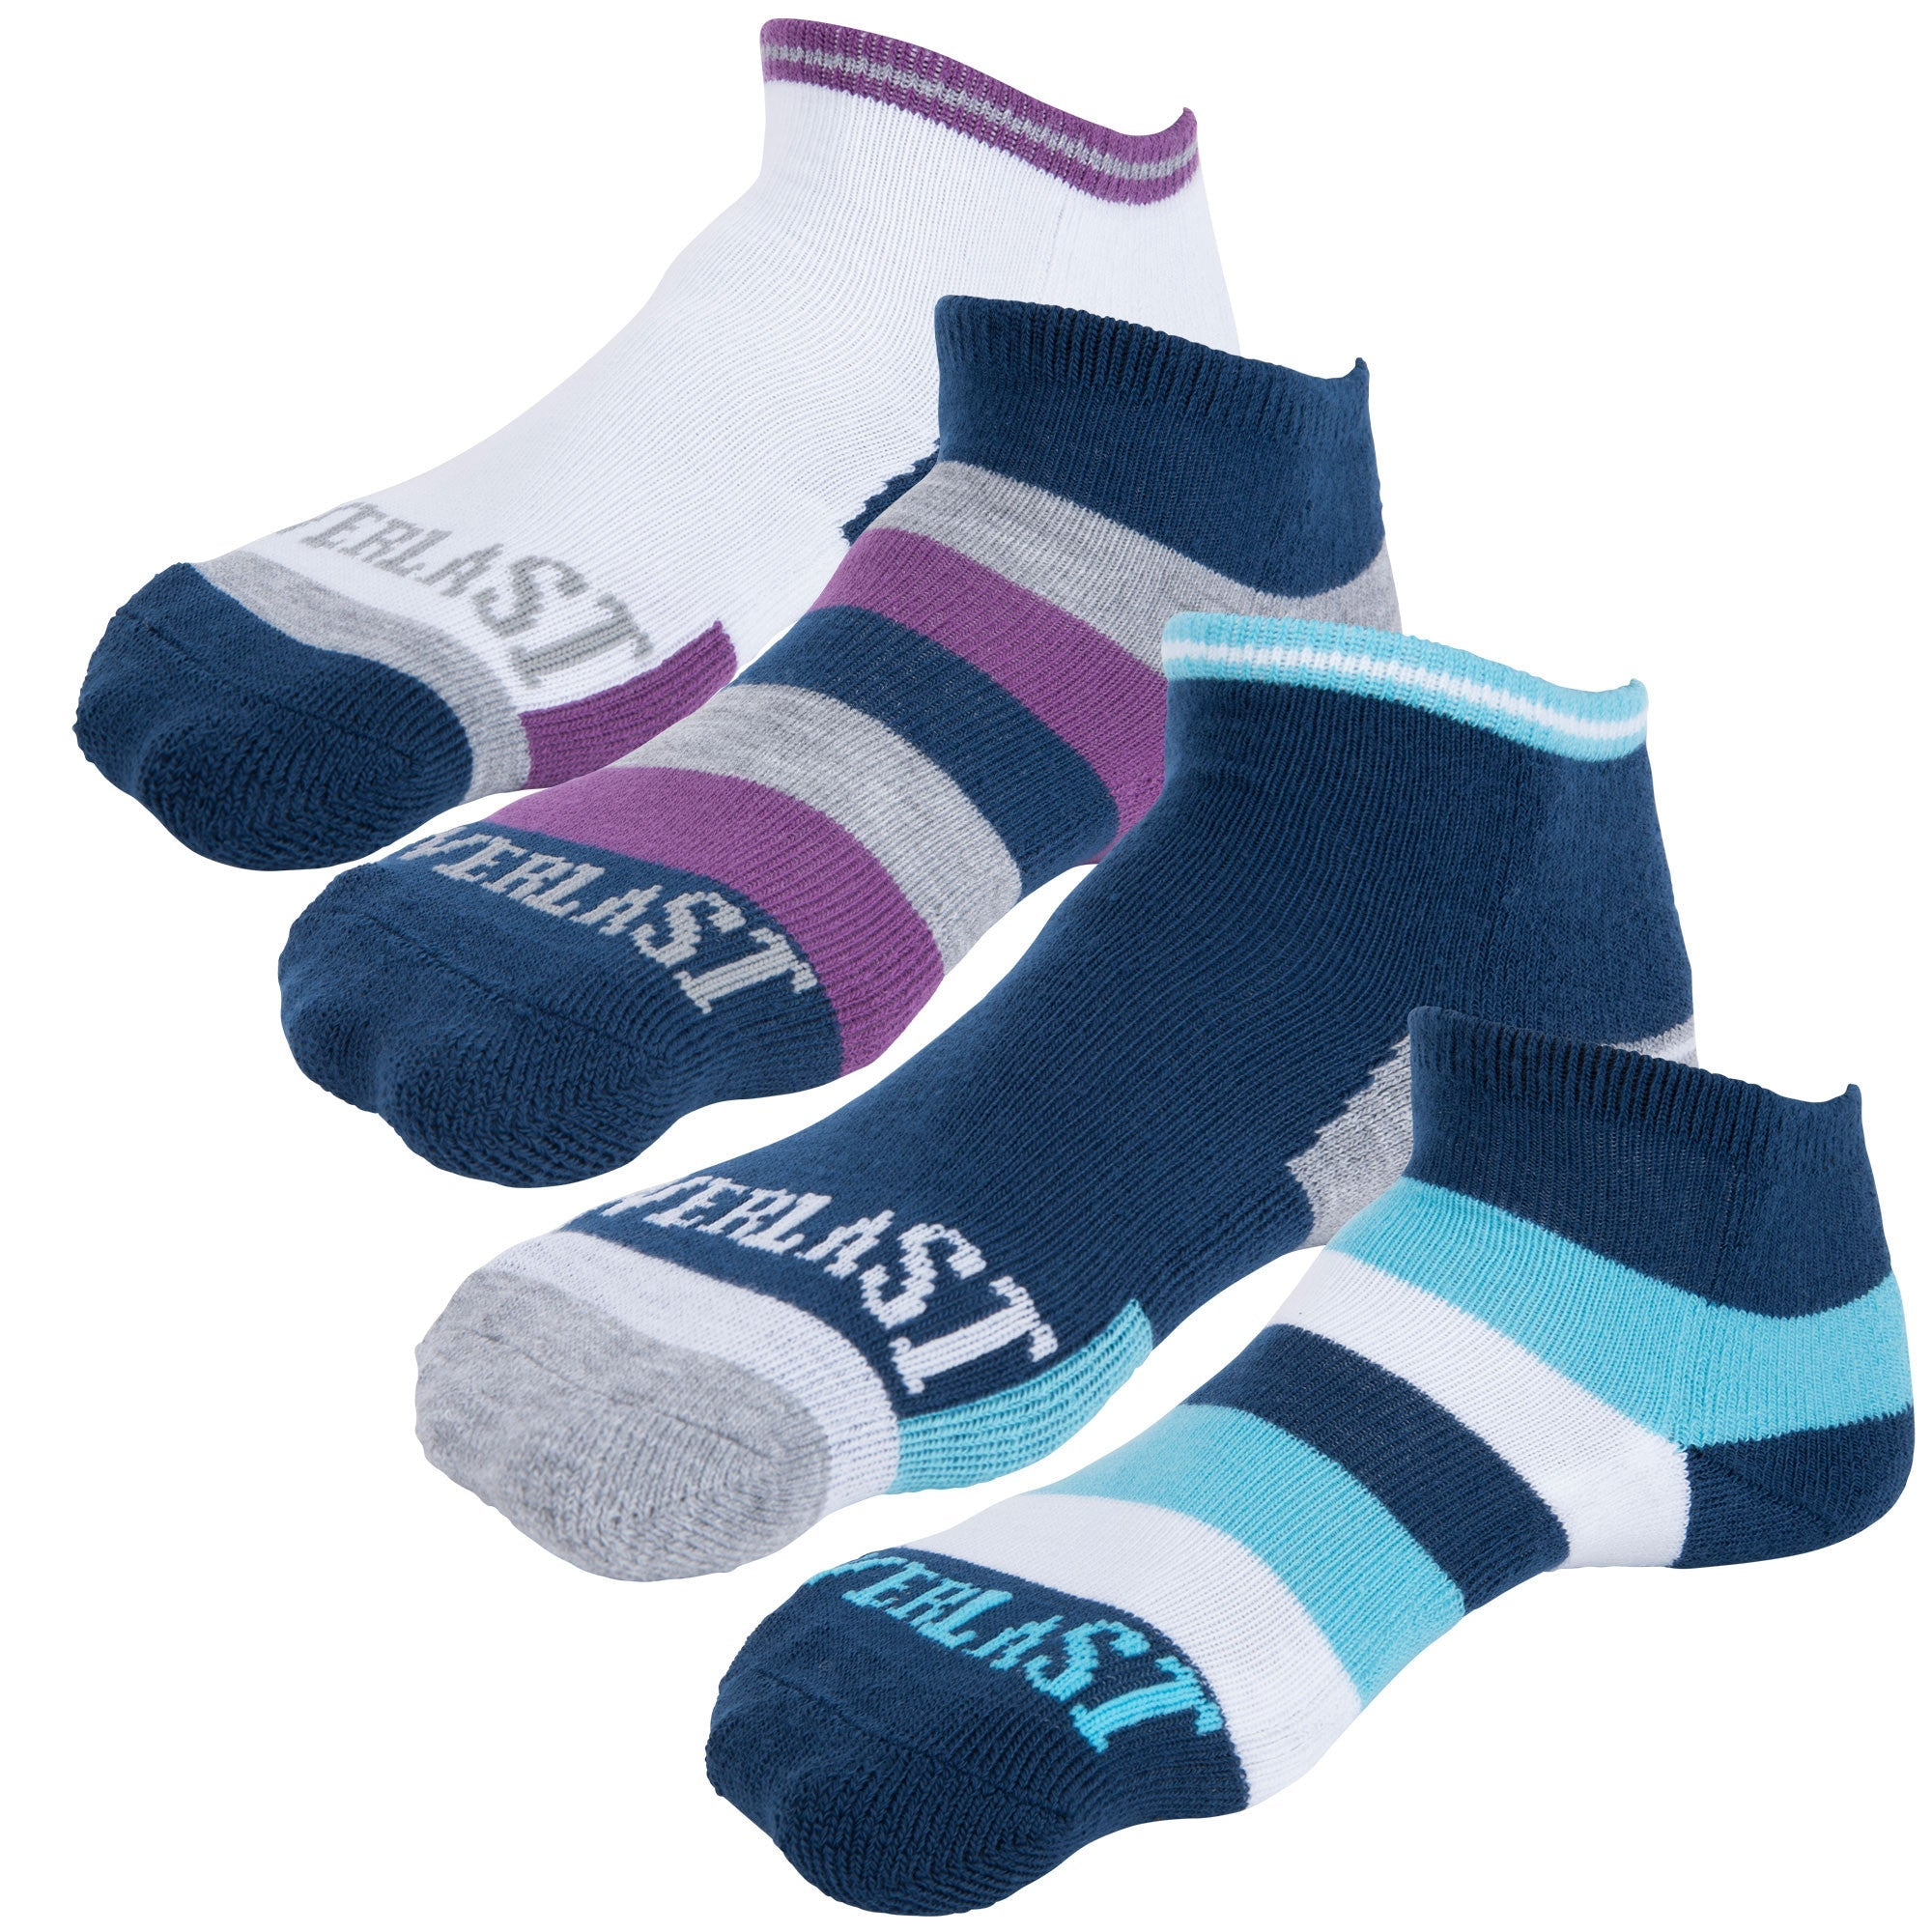 Everlast Girls Ankle Socks - 4 Pack by Everlast Canada